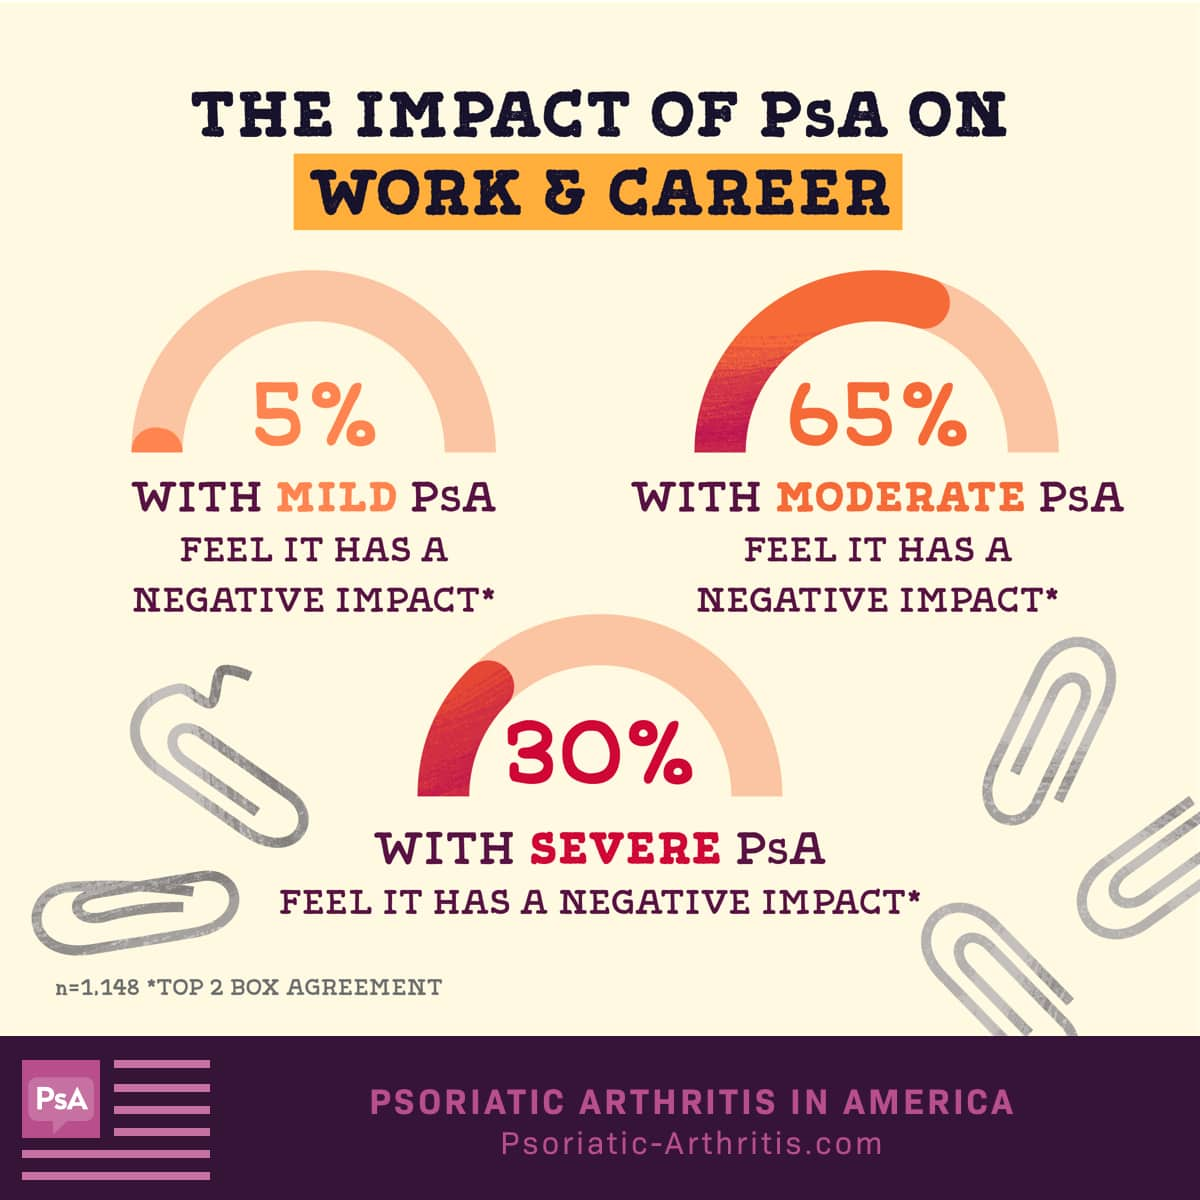 5% with mild PsA, 65% with moderate PsA, and 30% with severe PsA feel PsA has a negative impact on their ability to work.